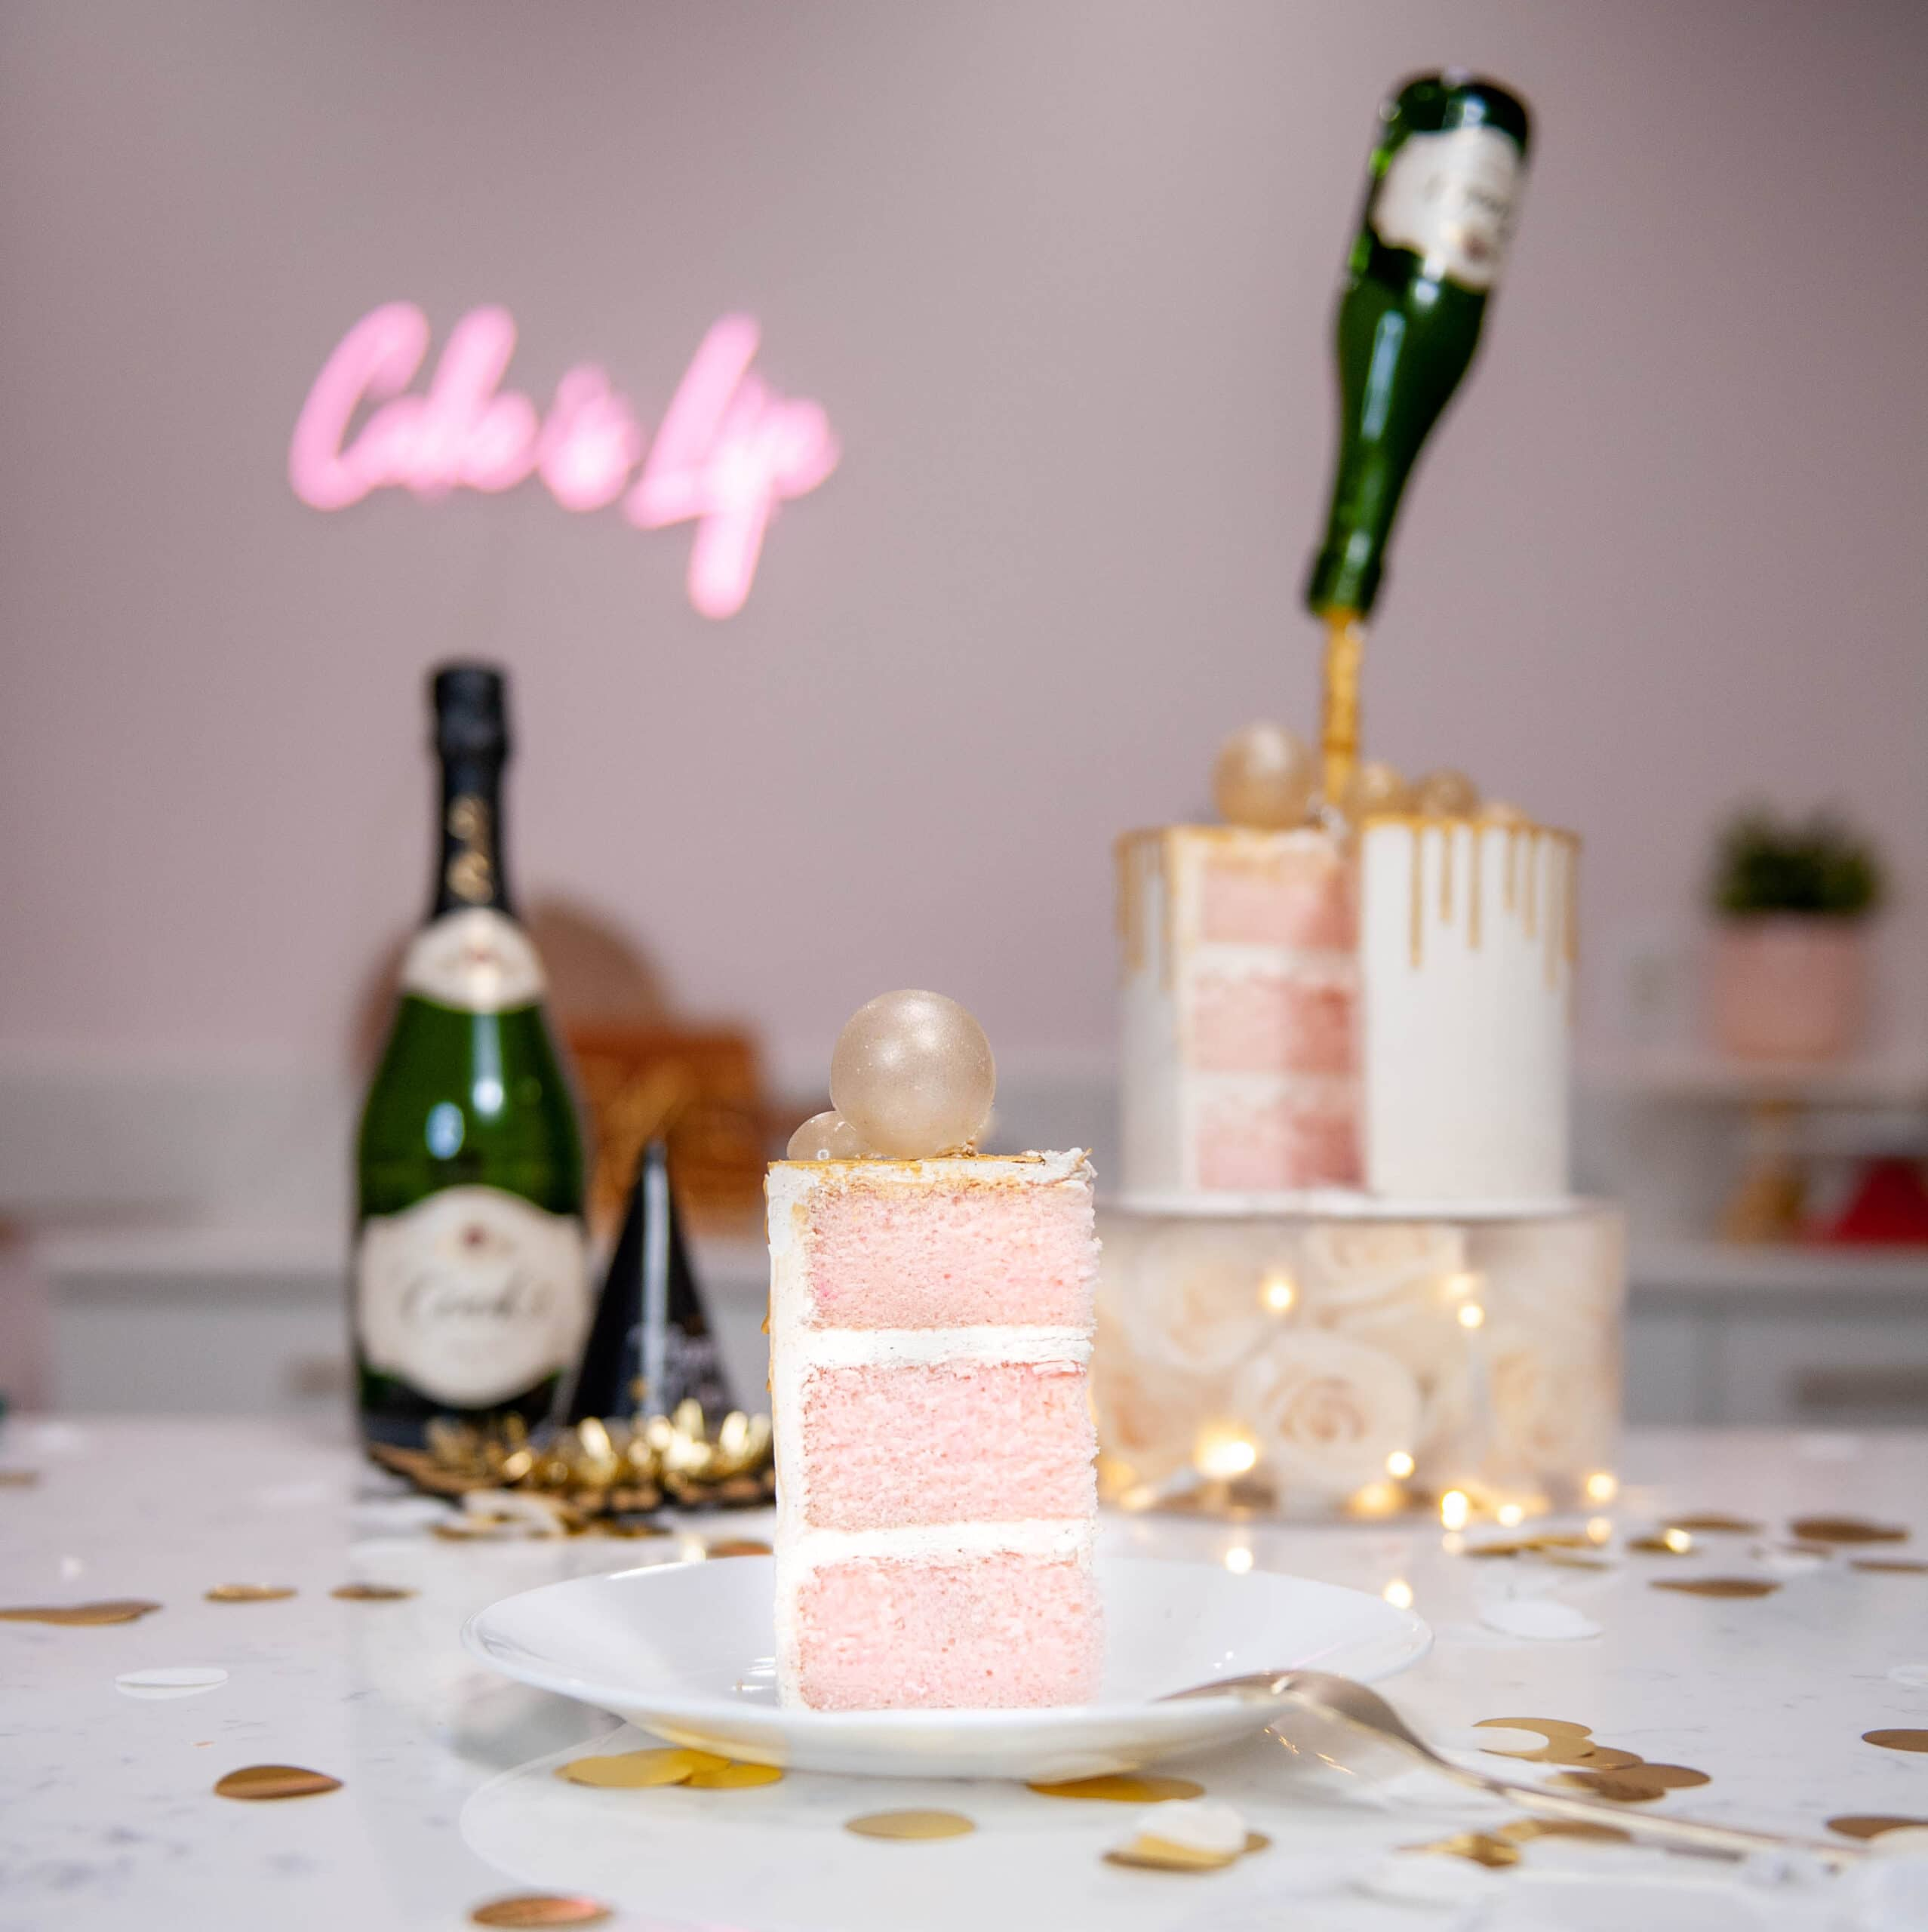 champagne cake on a plate with cake and champagne bottle in the background